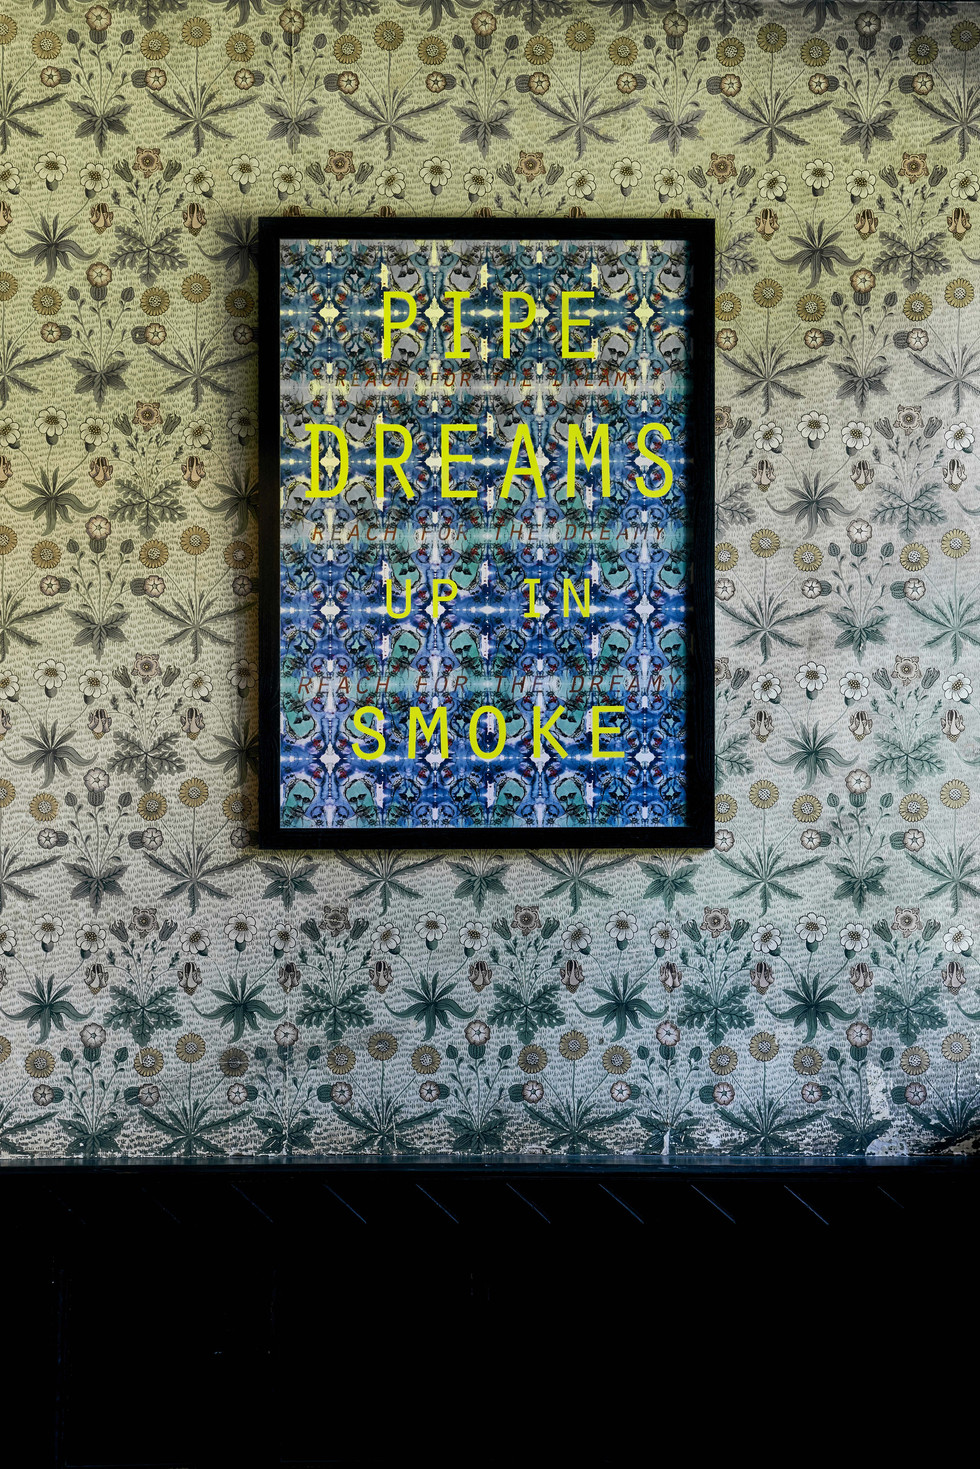 Pipe Dreams Up In Smoke, 2016